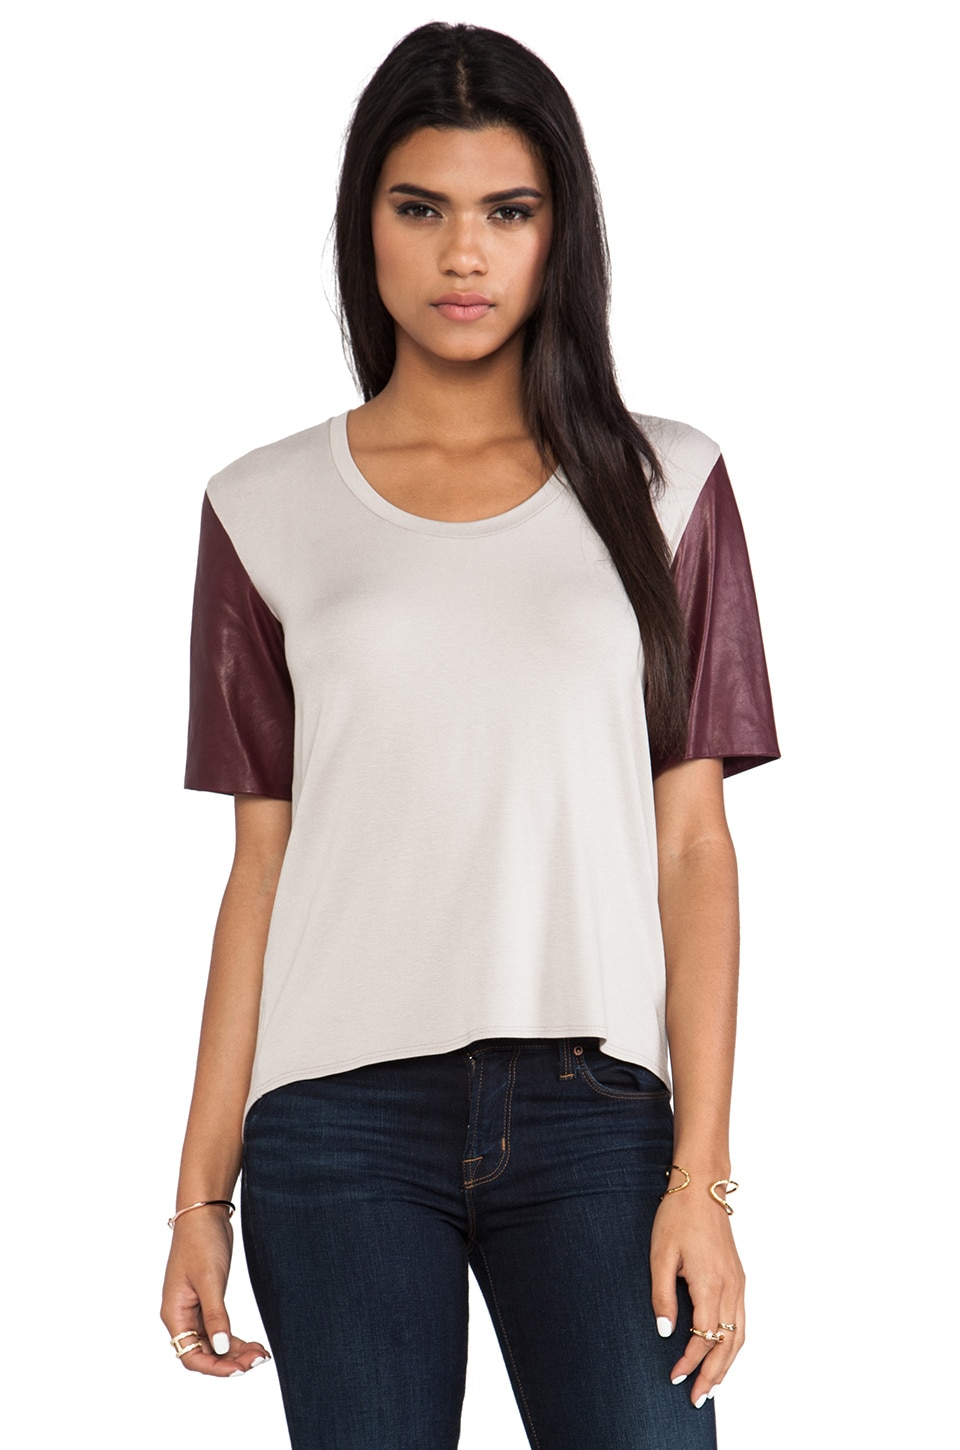 Mason by Michelle Mason Leather Sleeve Tee in Oyster/Wine